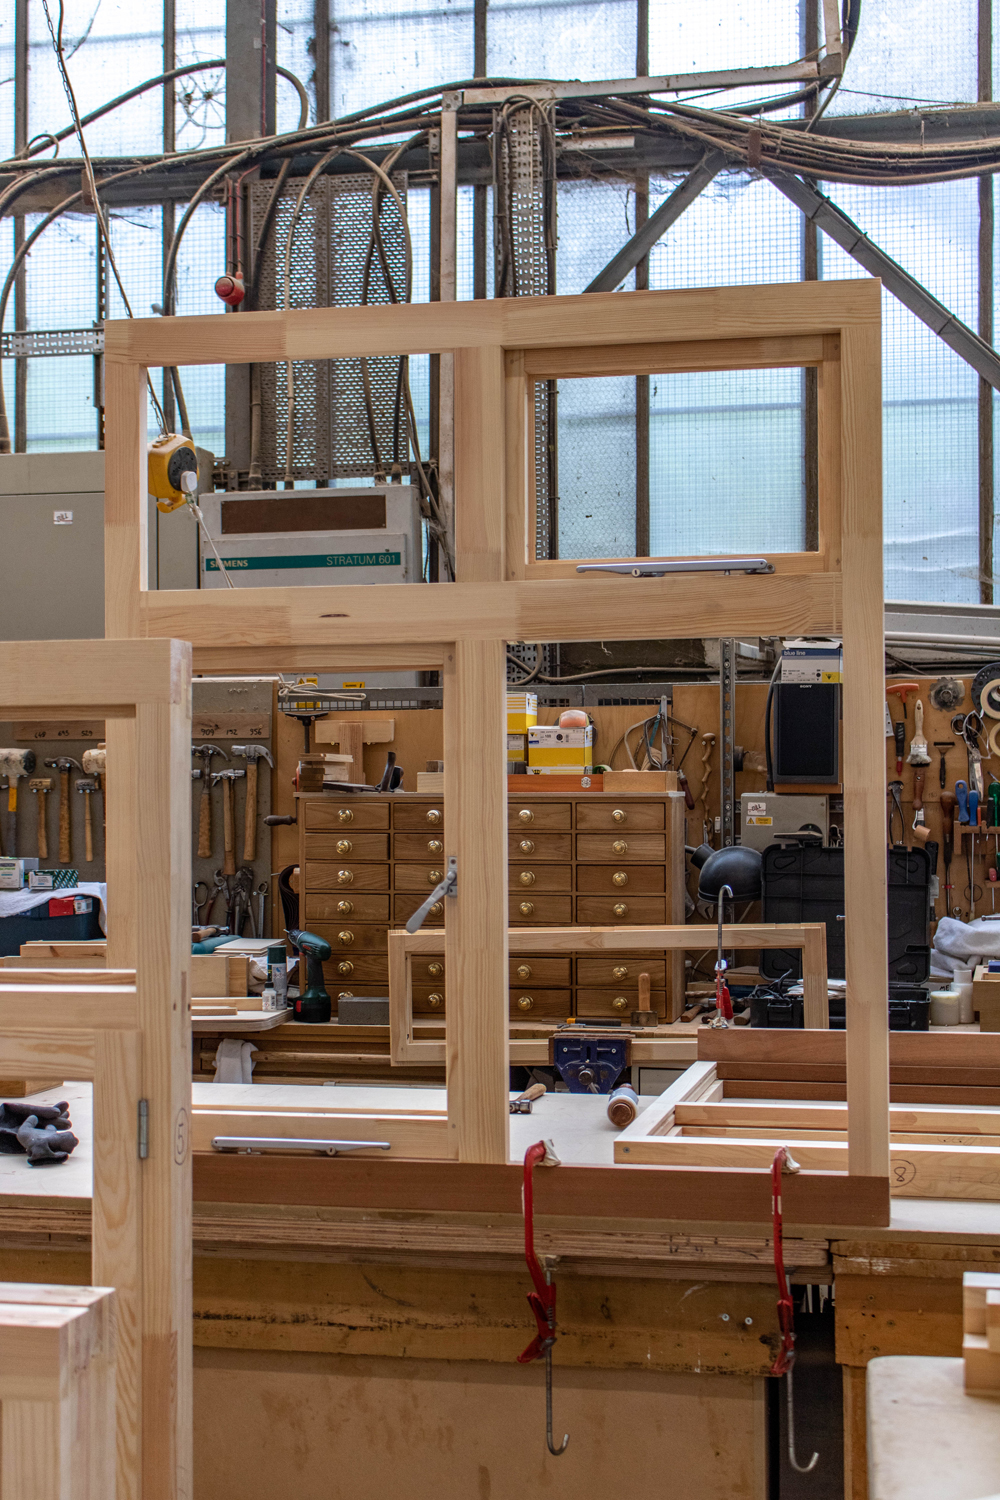 wooden window frame being built in workshop